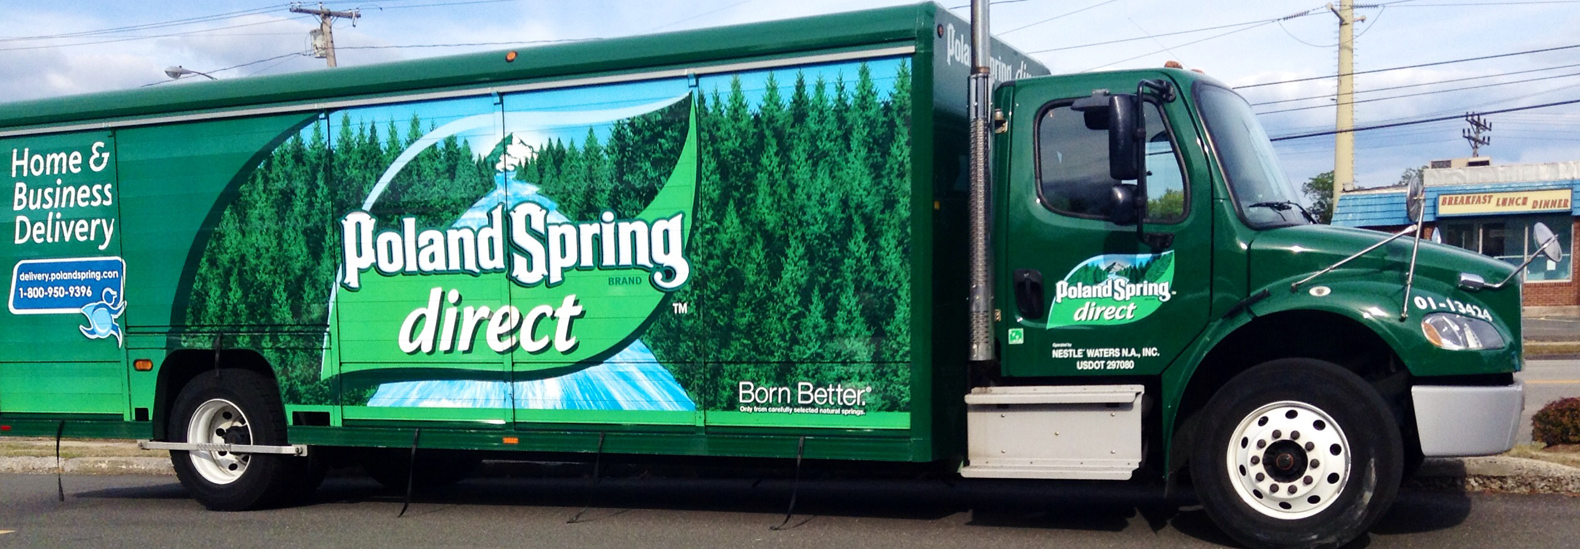 Poland Spring pledges 100% recycled bottles by 2022